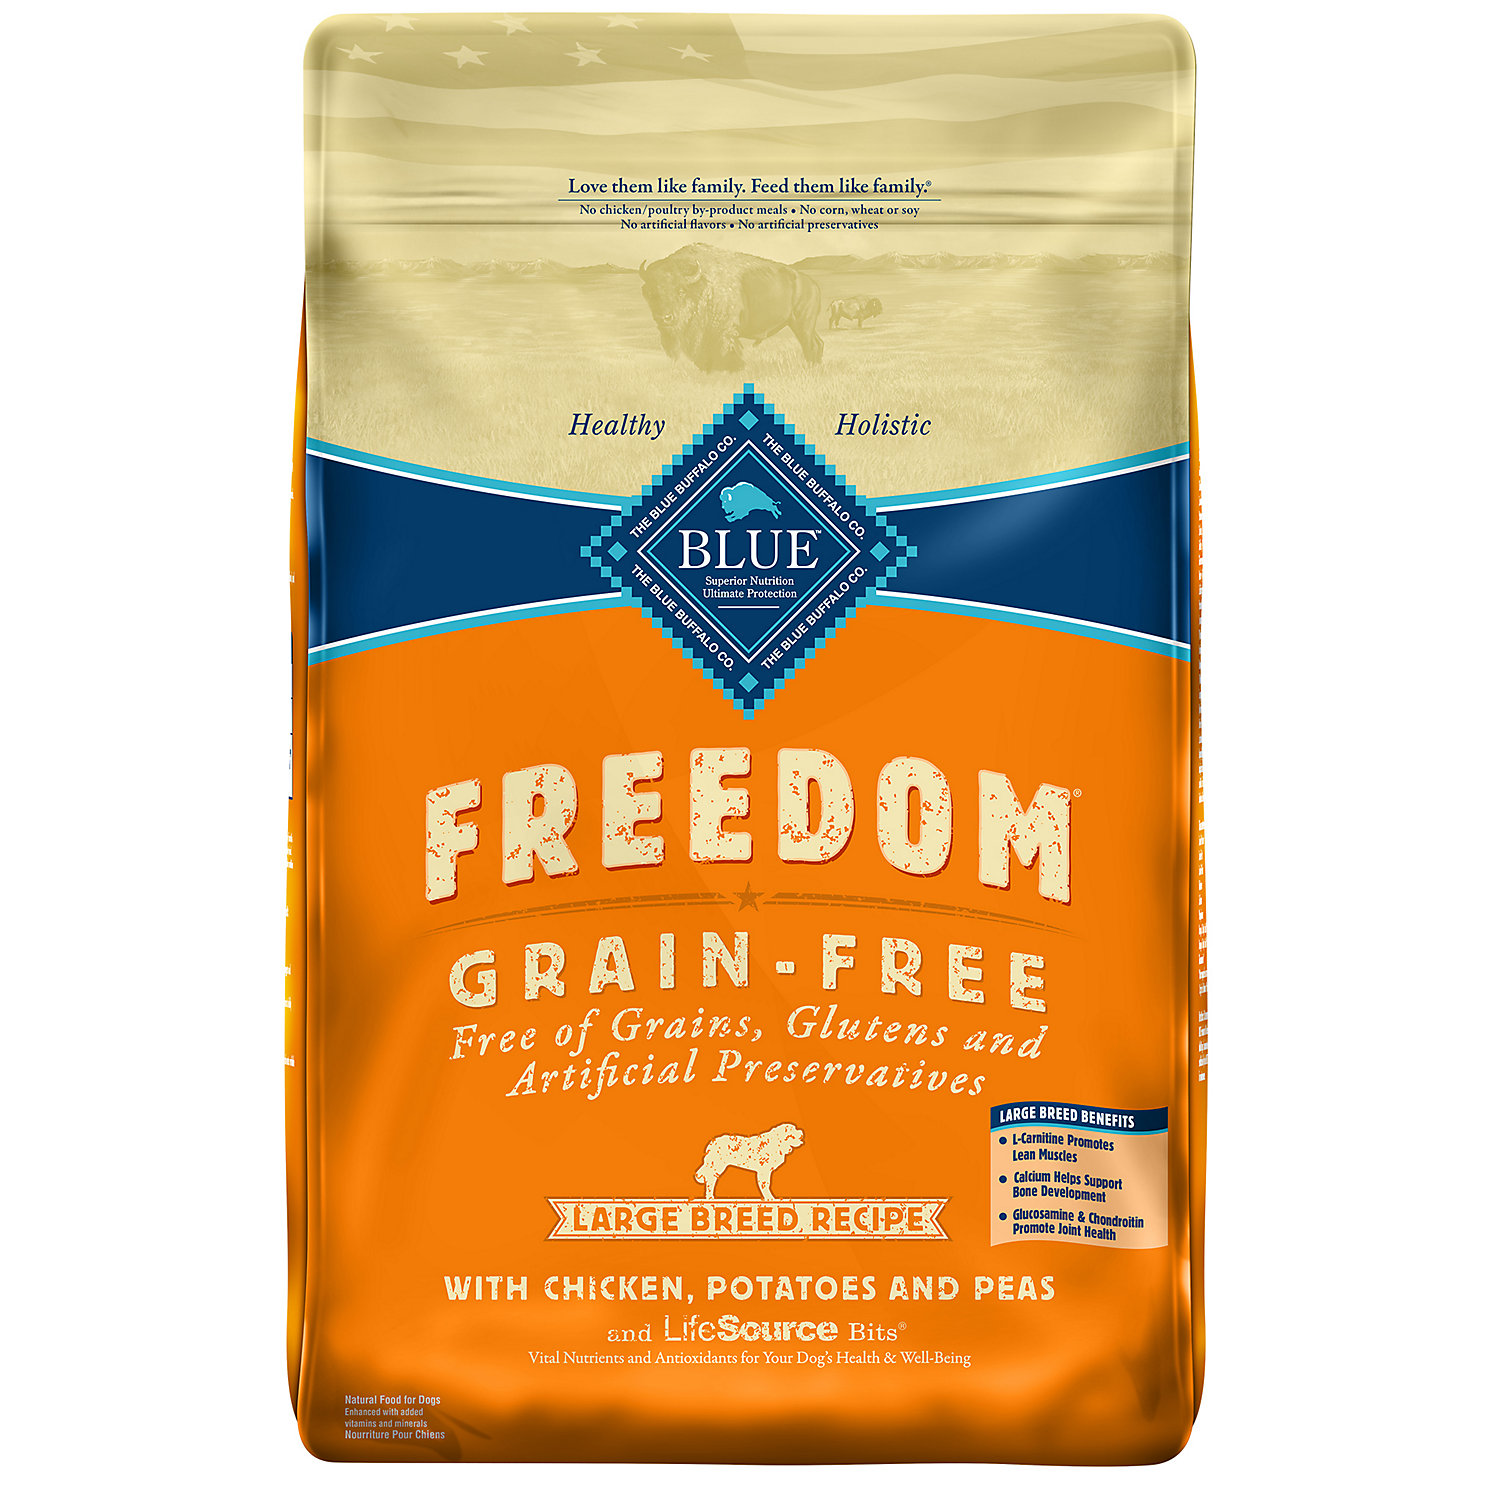 Pounds Large Breed Dog Food Prices